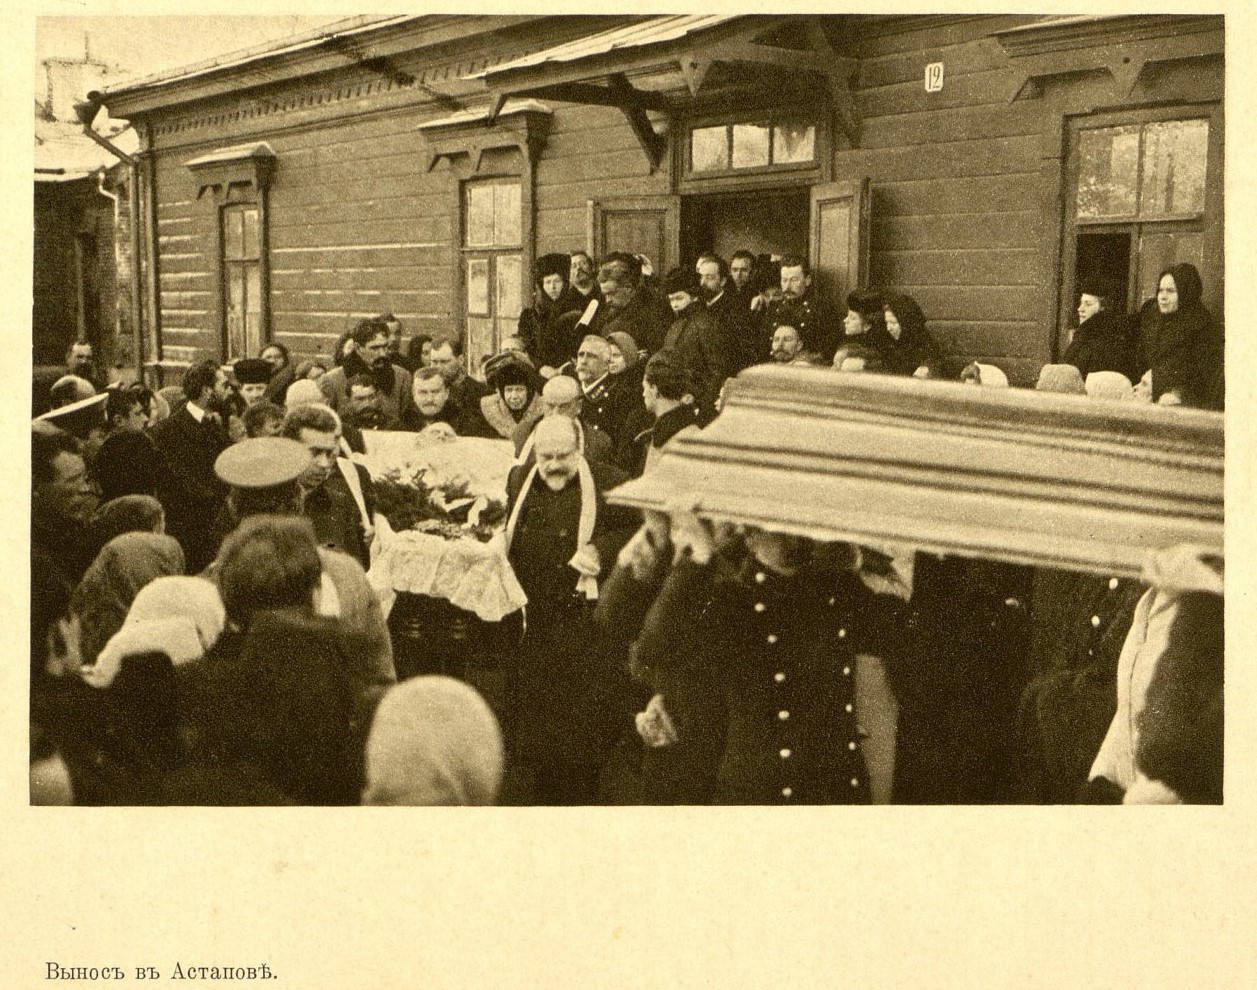 Tolstoy's body being carried out of Astapovo station, 1910